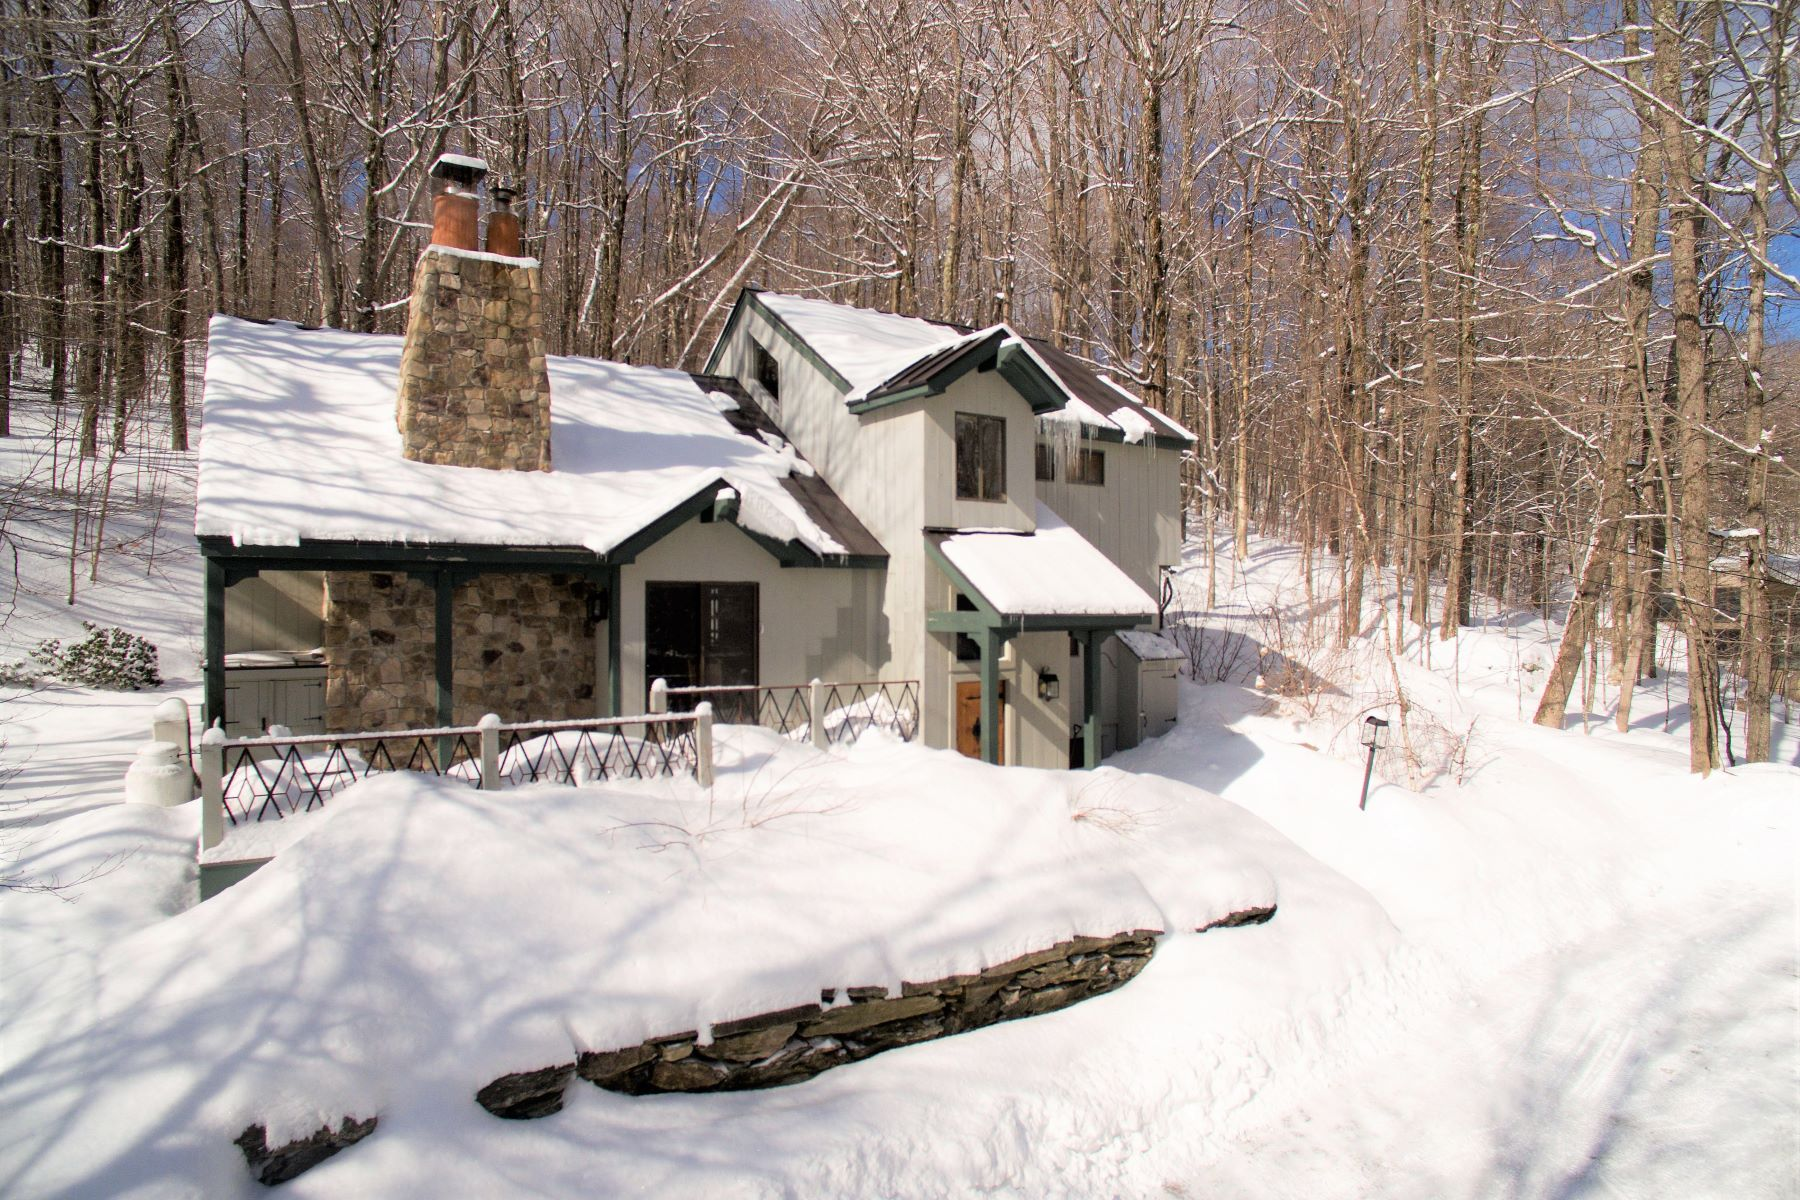 Single Family Homes for Sale at 13 Roundtree Road, Winhall 13 Roundtree Rd Winhall, Vermont 05340 United States